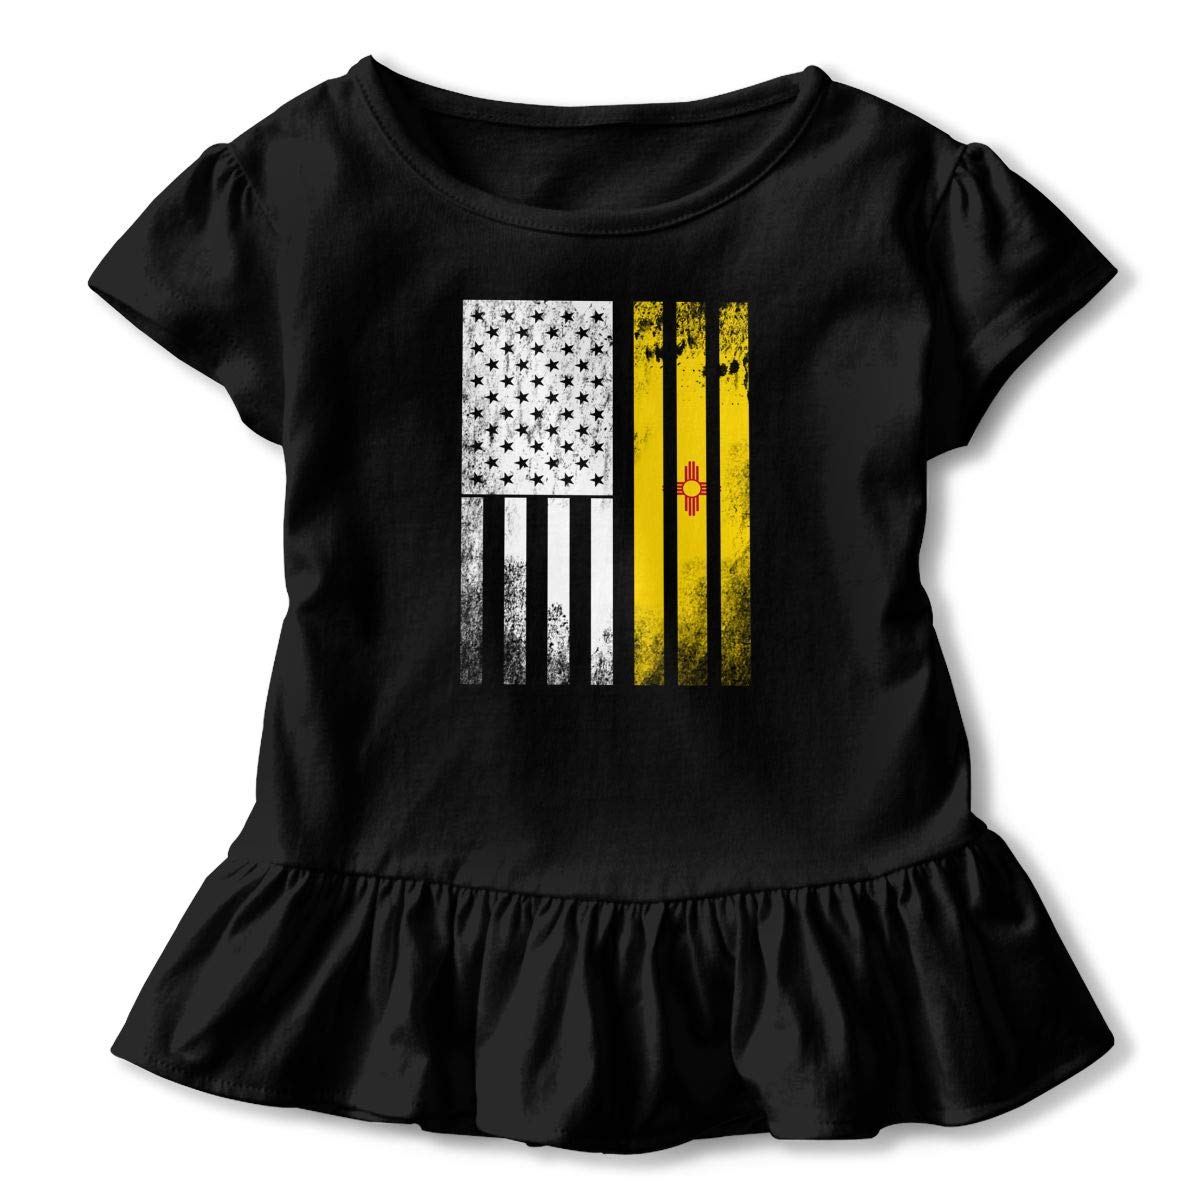 USA Vintage New Mexico State Flag Toddler Baby Girls Short Sleeve Ruffle T-Shirt